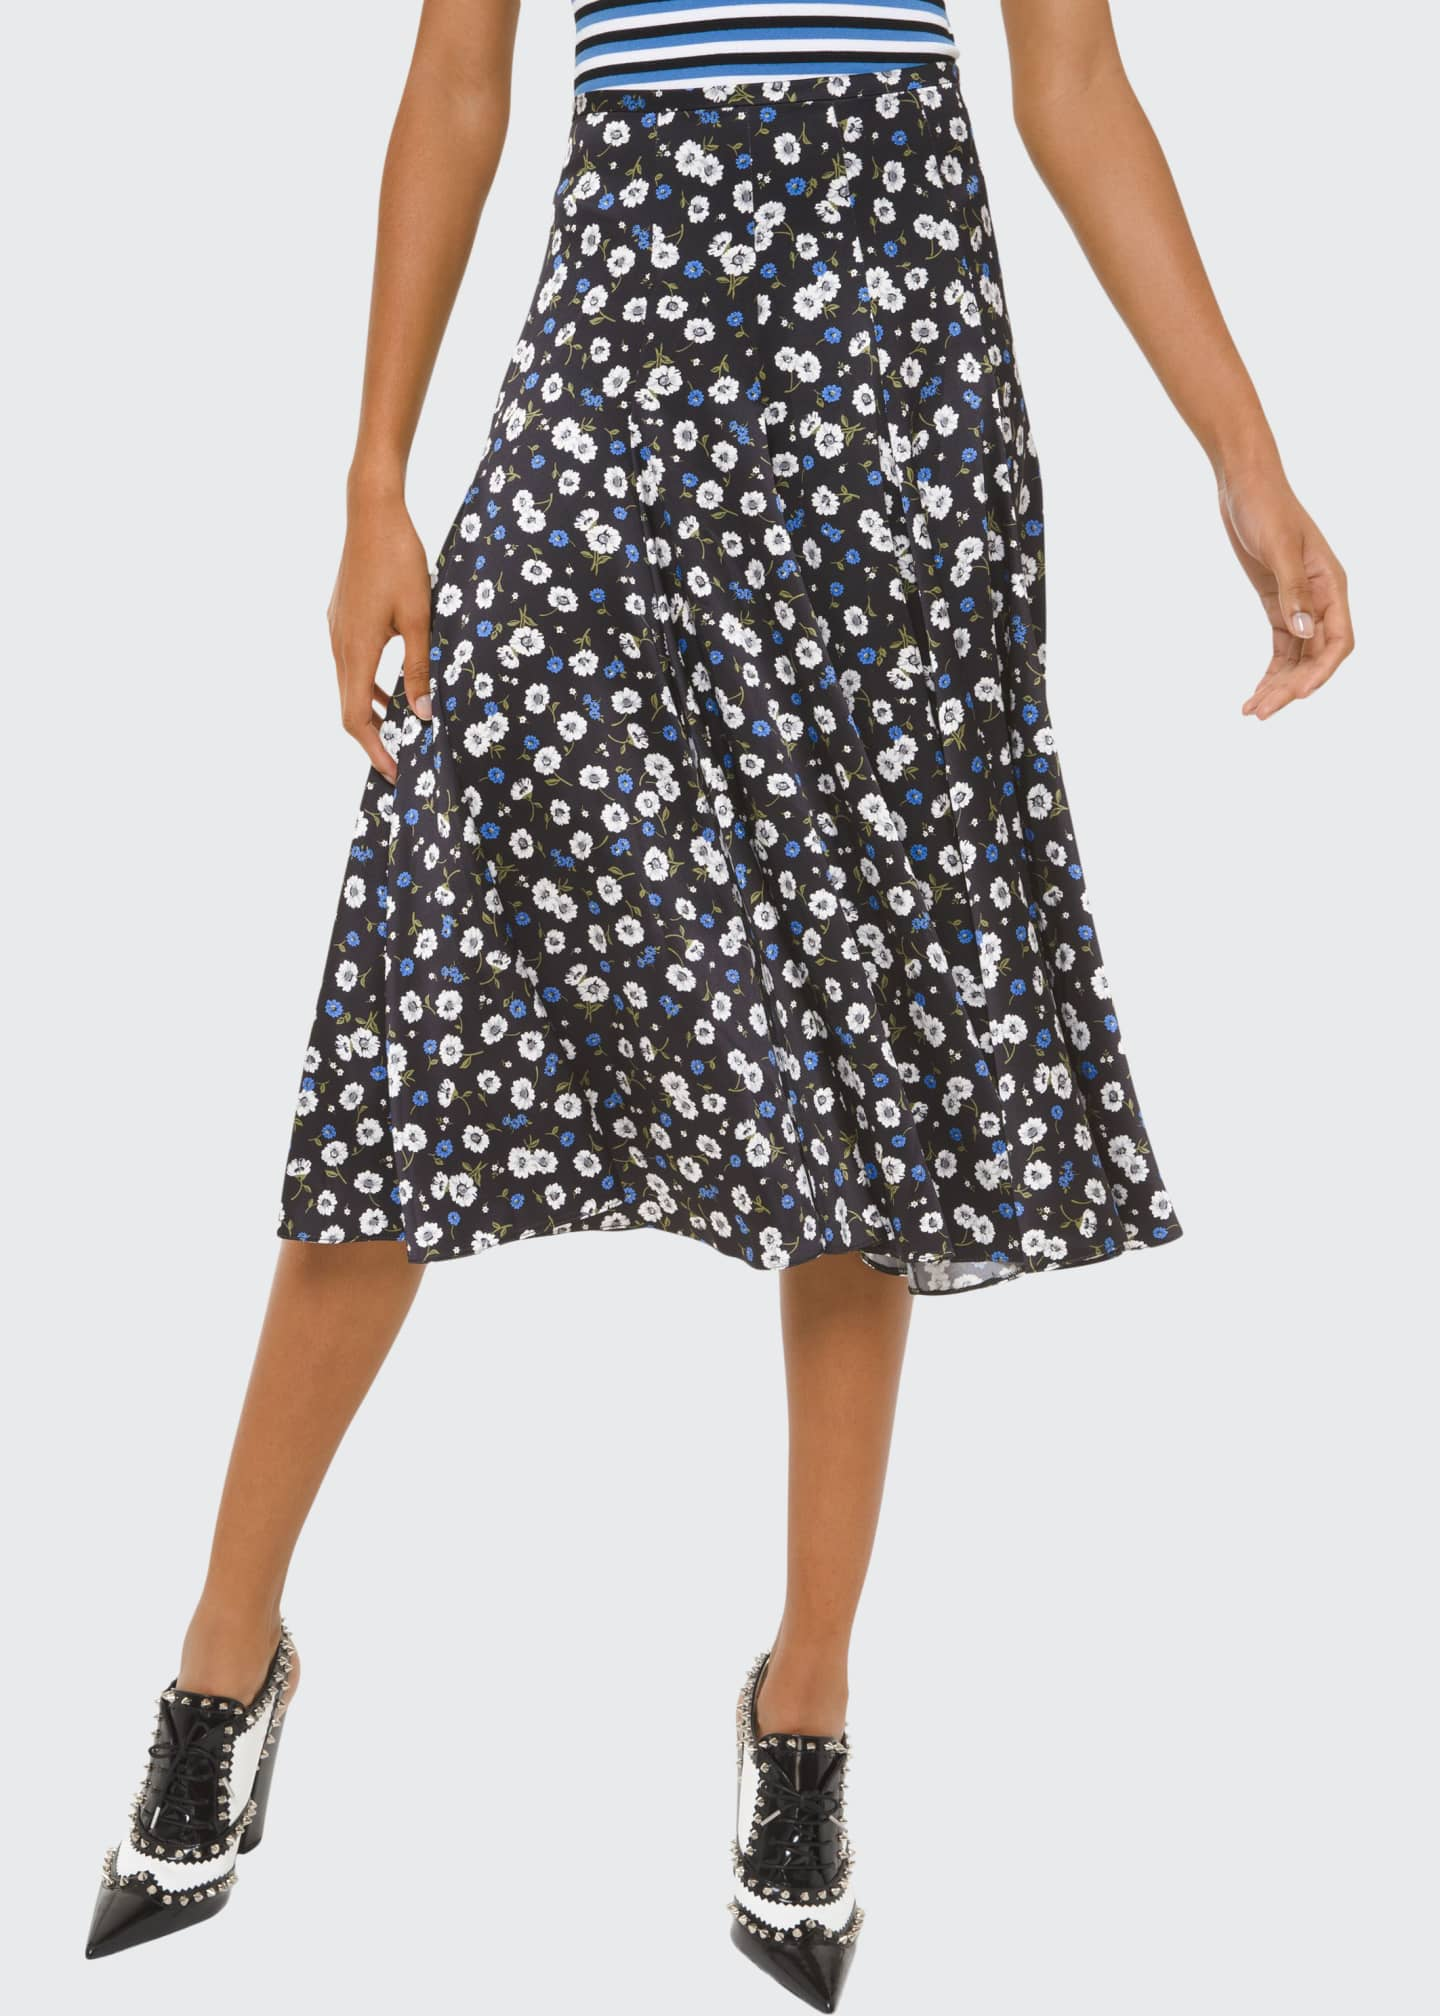 Michael Kors Collection Silk Dance Skirt